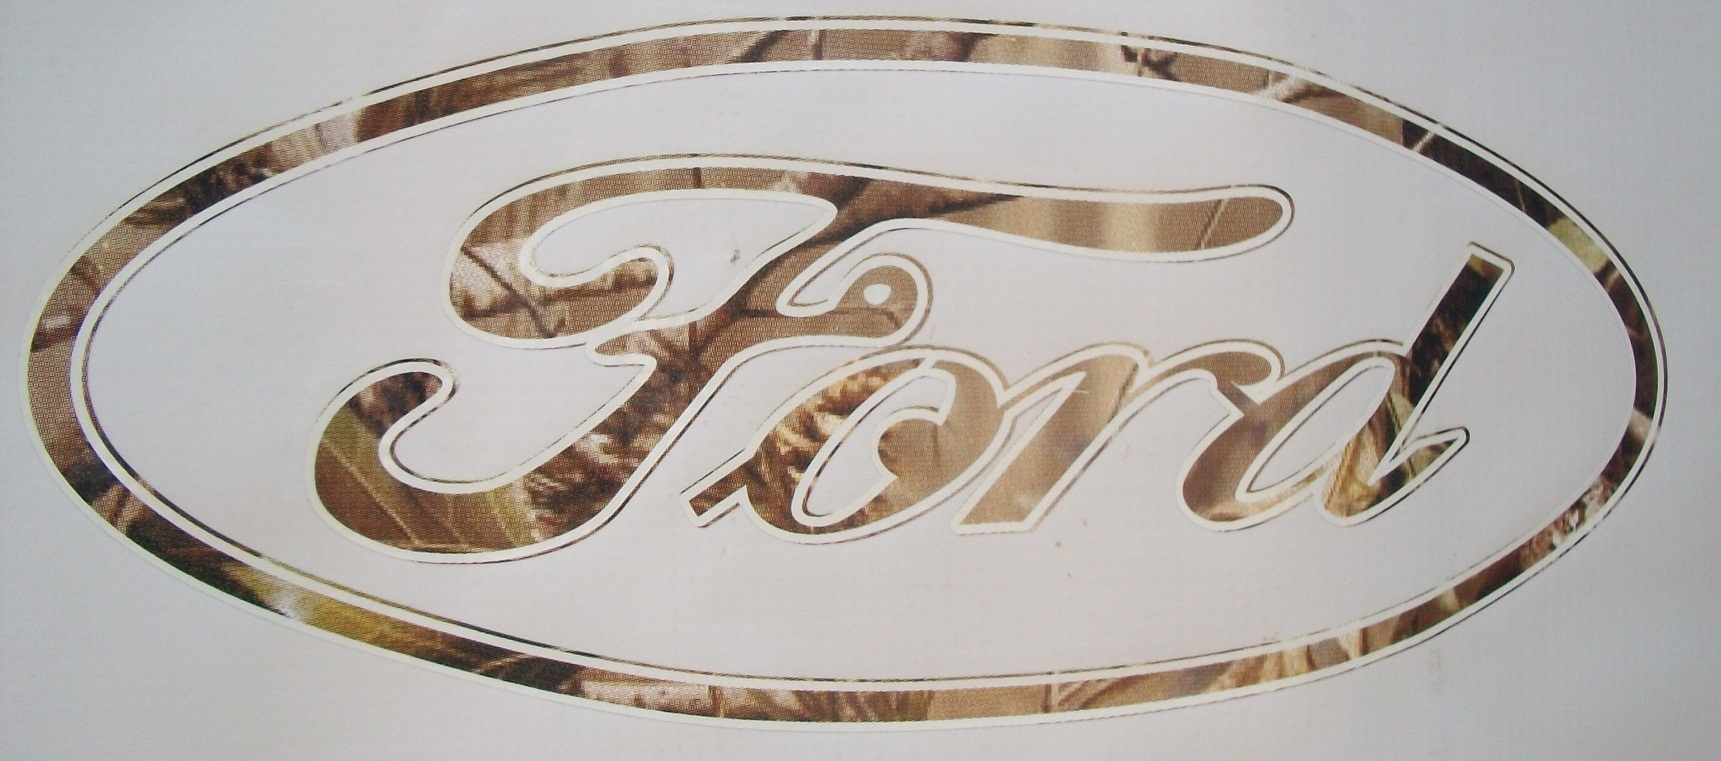 Ford Oval Camo Decal